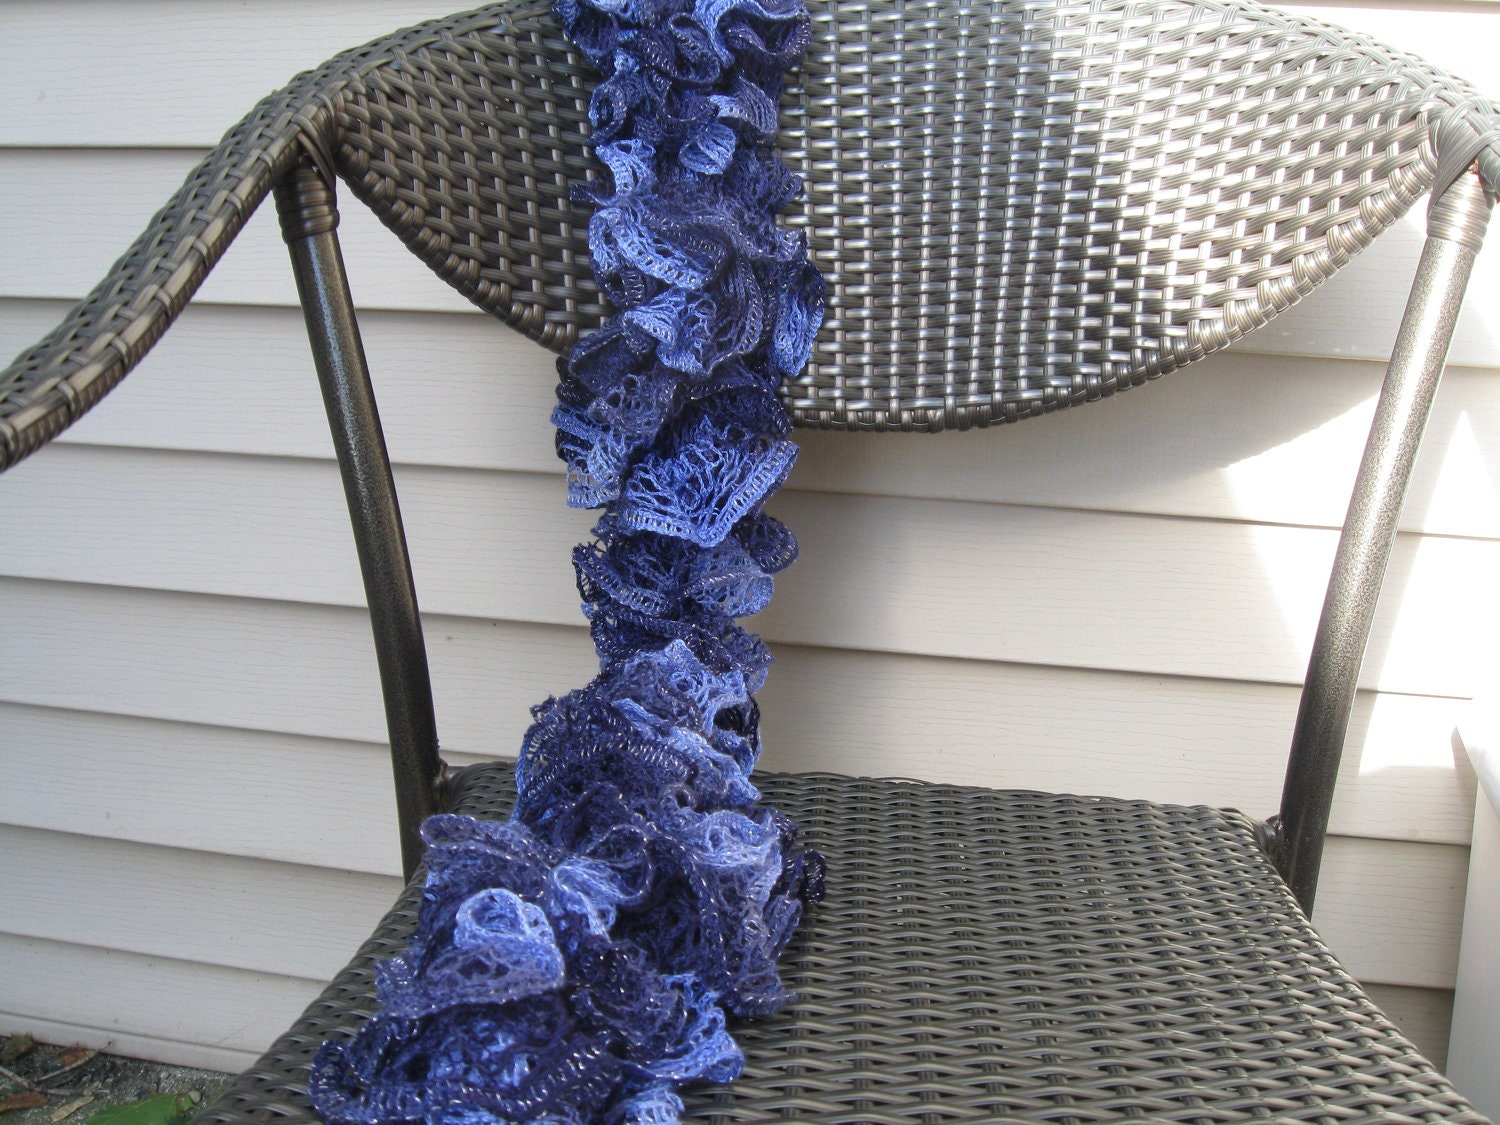 Ruffled Shades of Blue Lace Yarn Hand Knitted Soft Acrylic Scarf 55 inches long